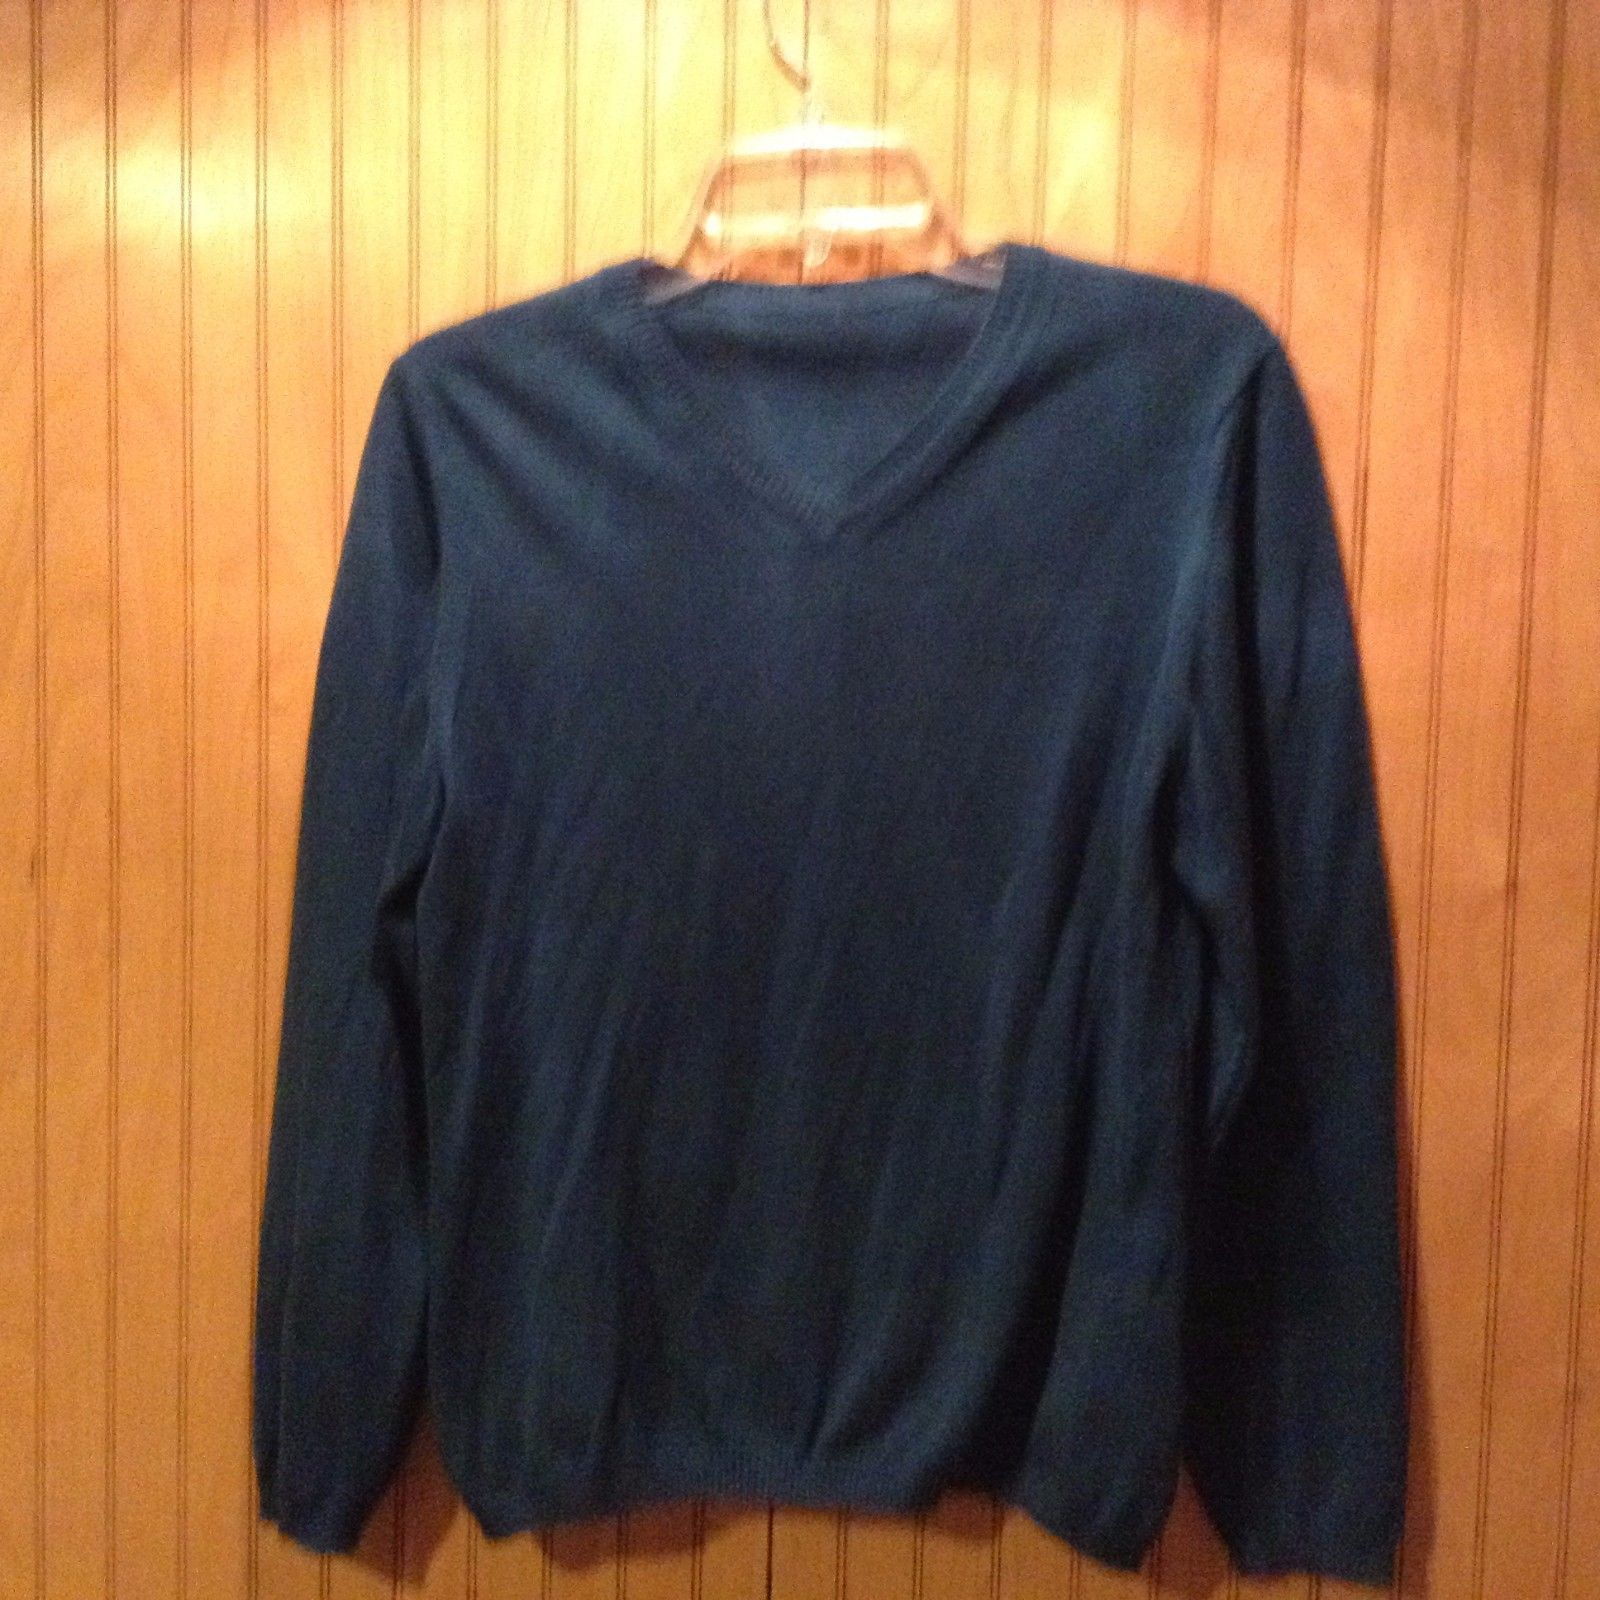 Blue Cashmere Sweater Made in Italy V-Neck Long Sleeve